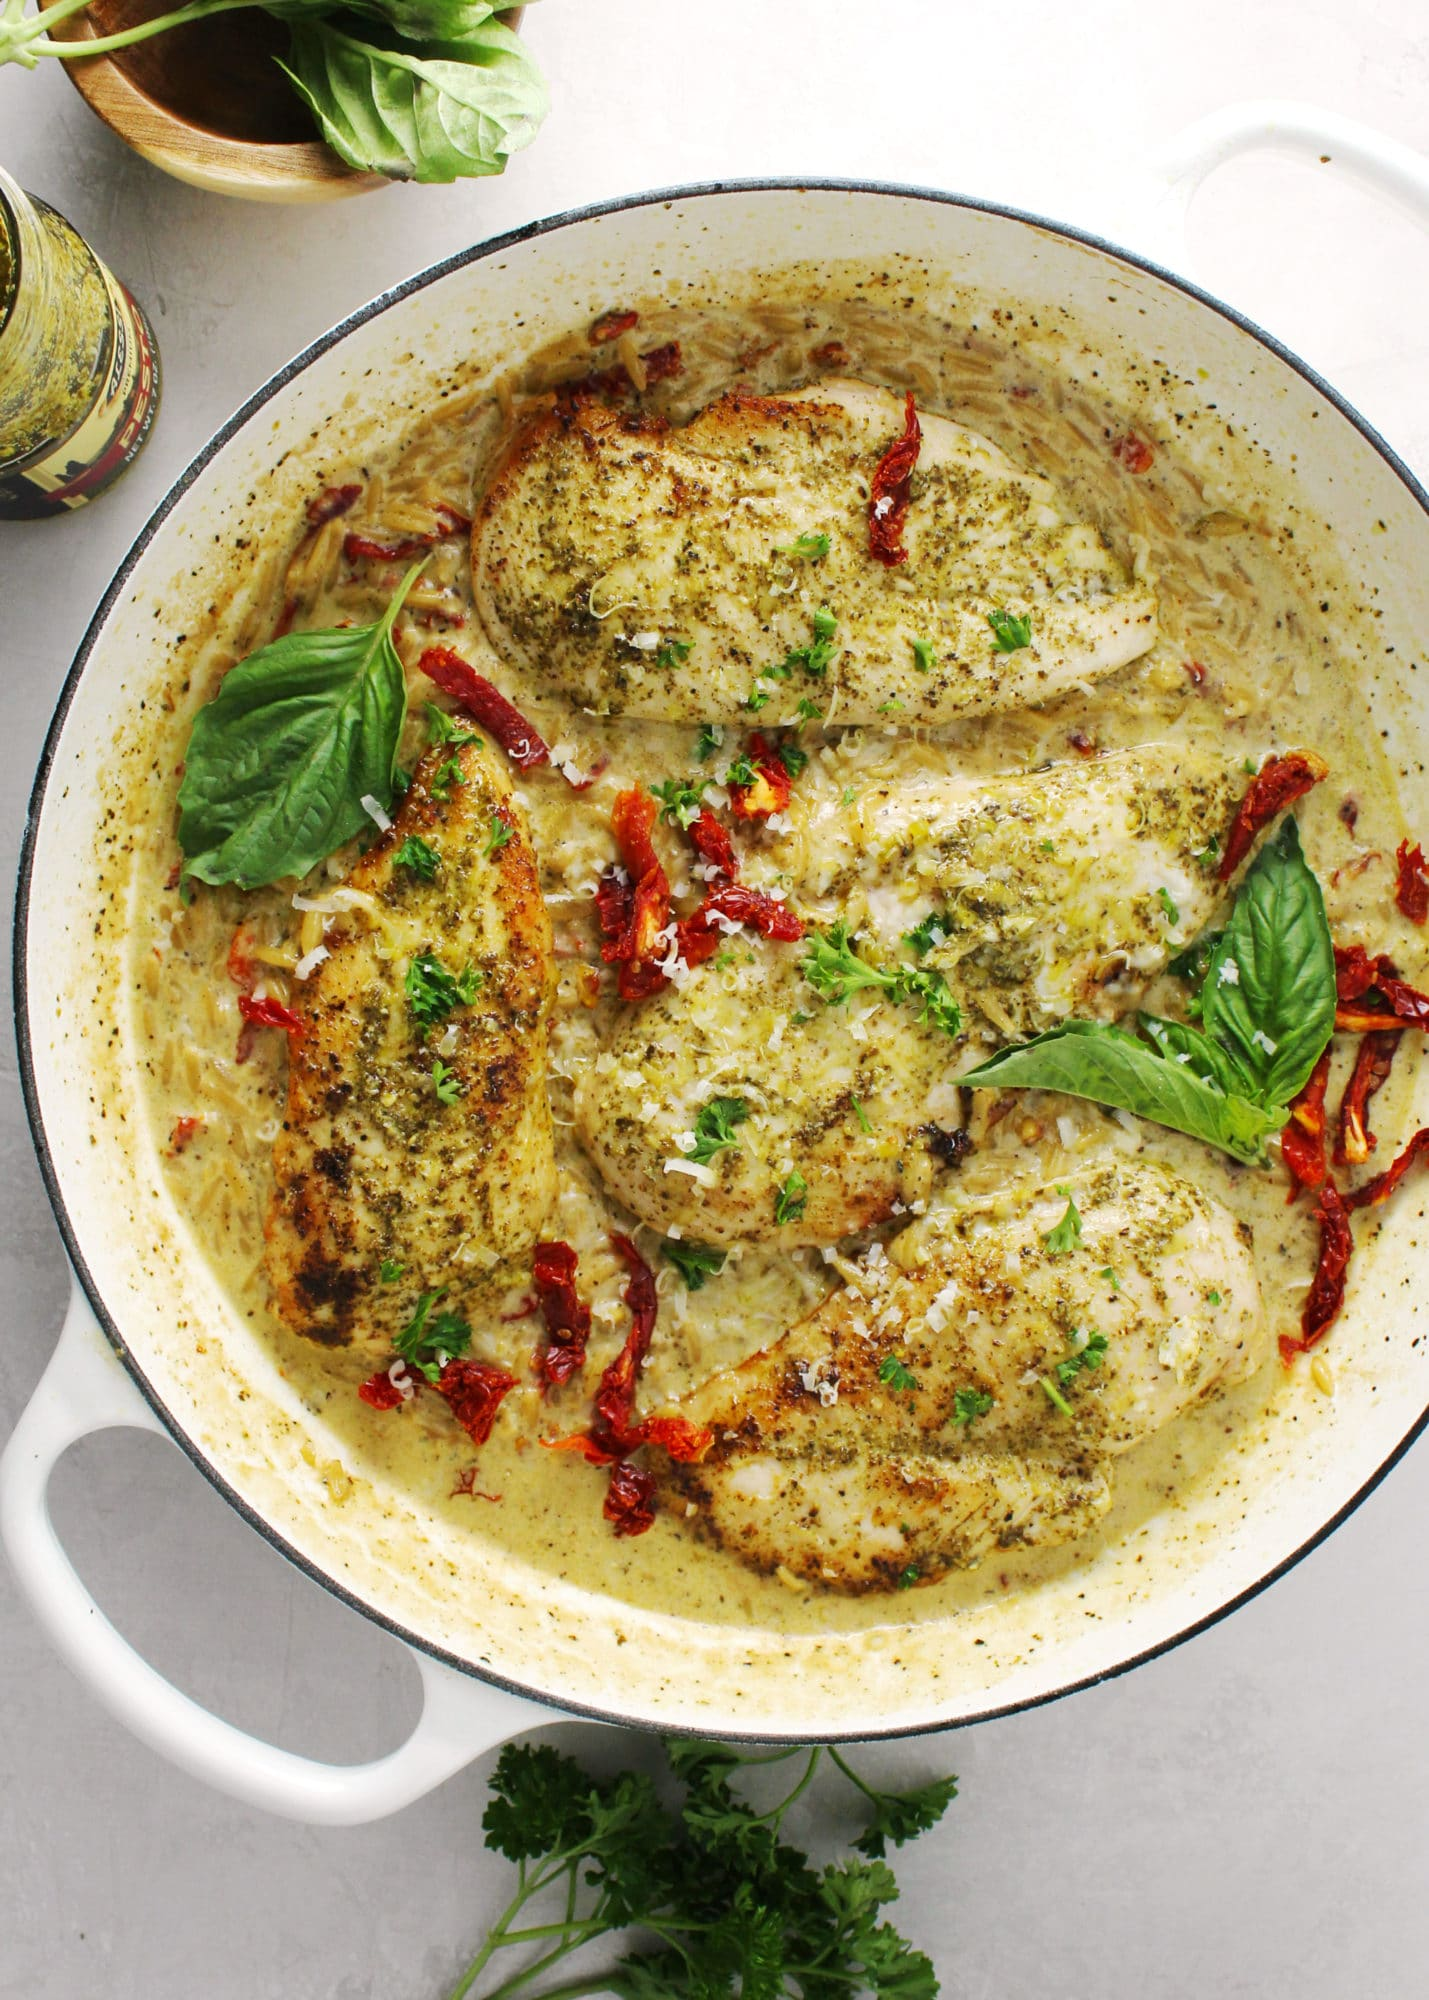 Creamy basil pesto chicken topped with fresh basil leaves in a white skillet.